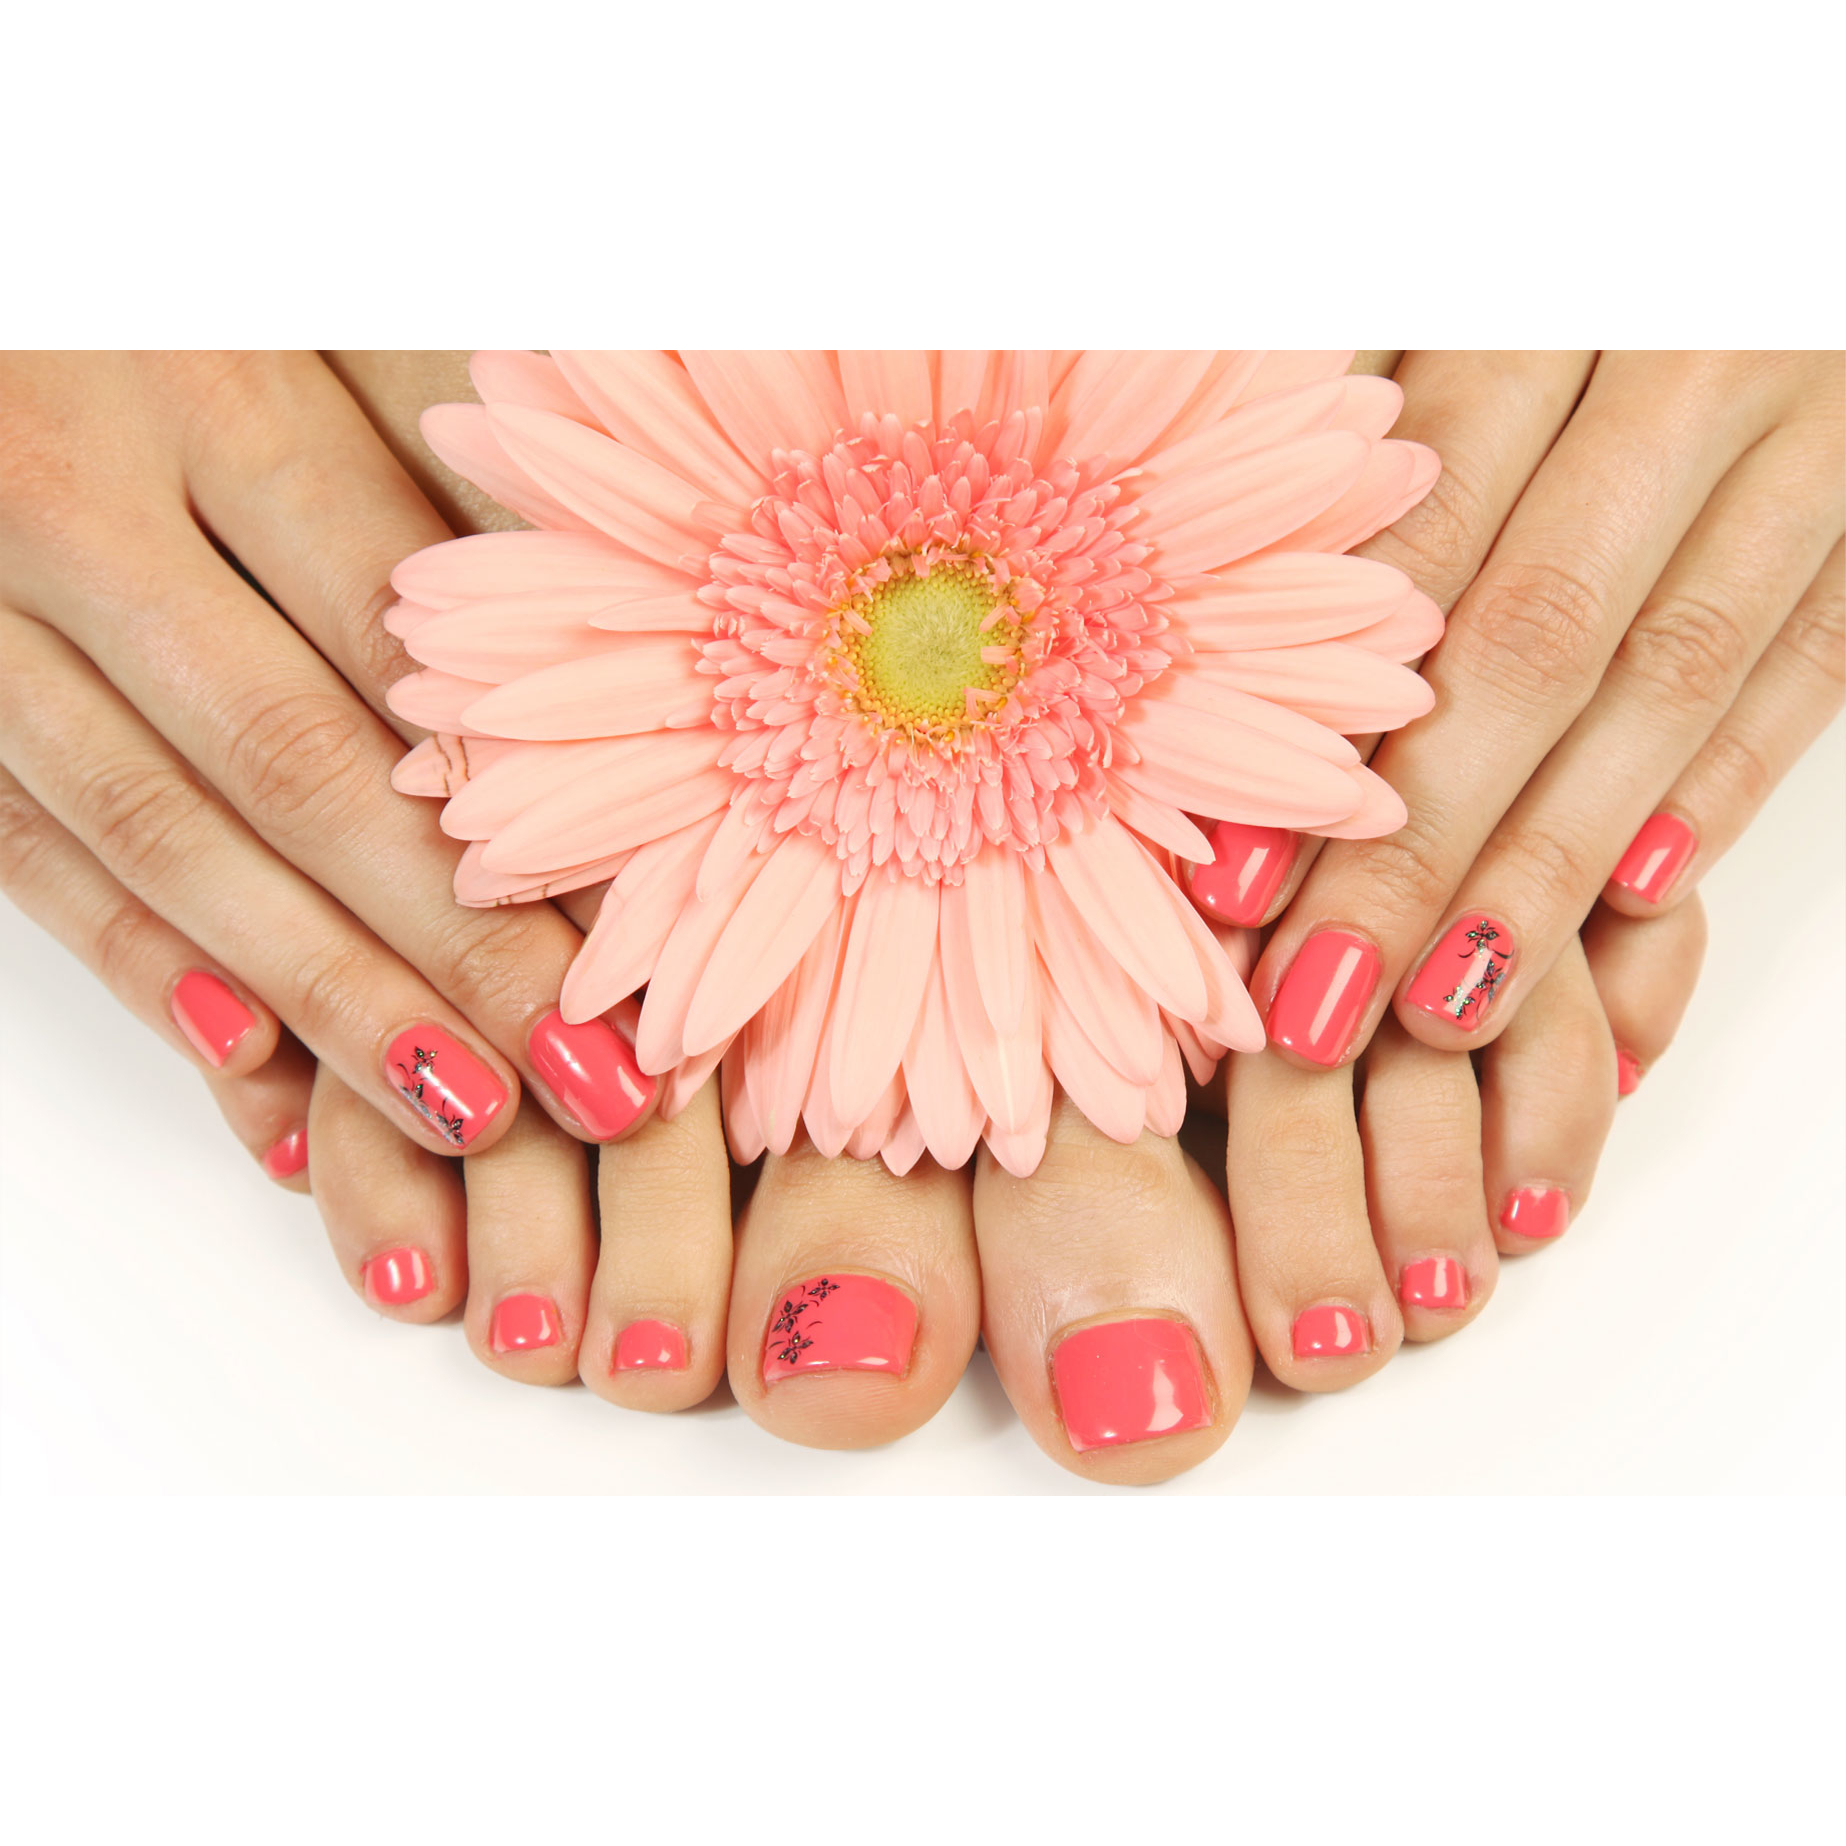 Lux Nails Spa in Fort Mill, SC 29708 - ChamberofCommerce.com